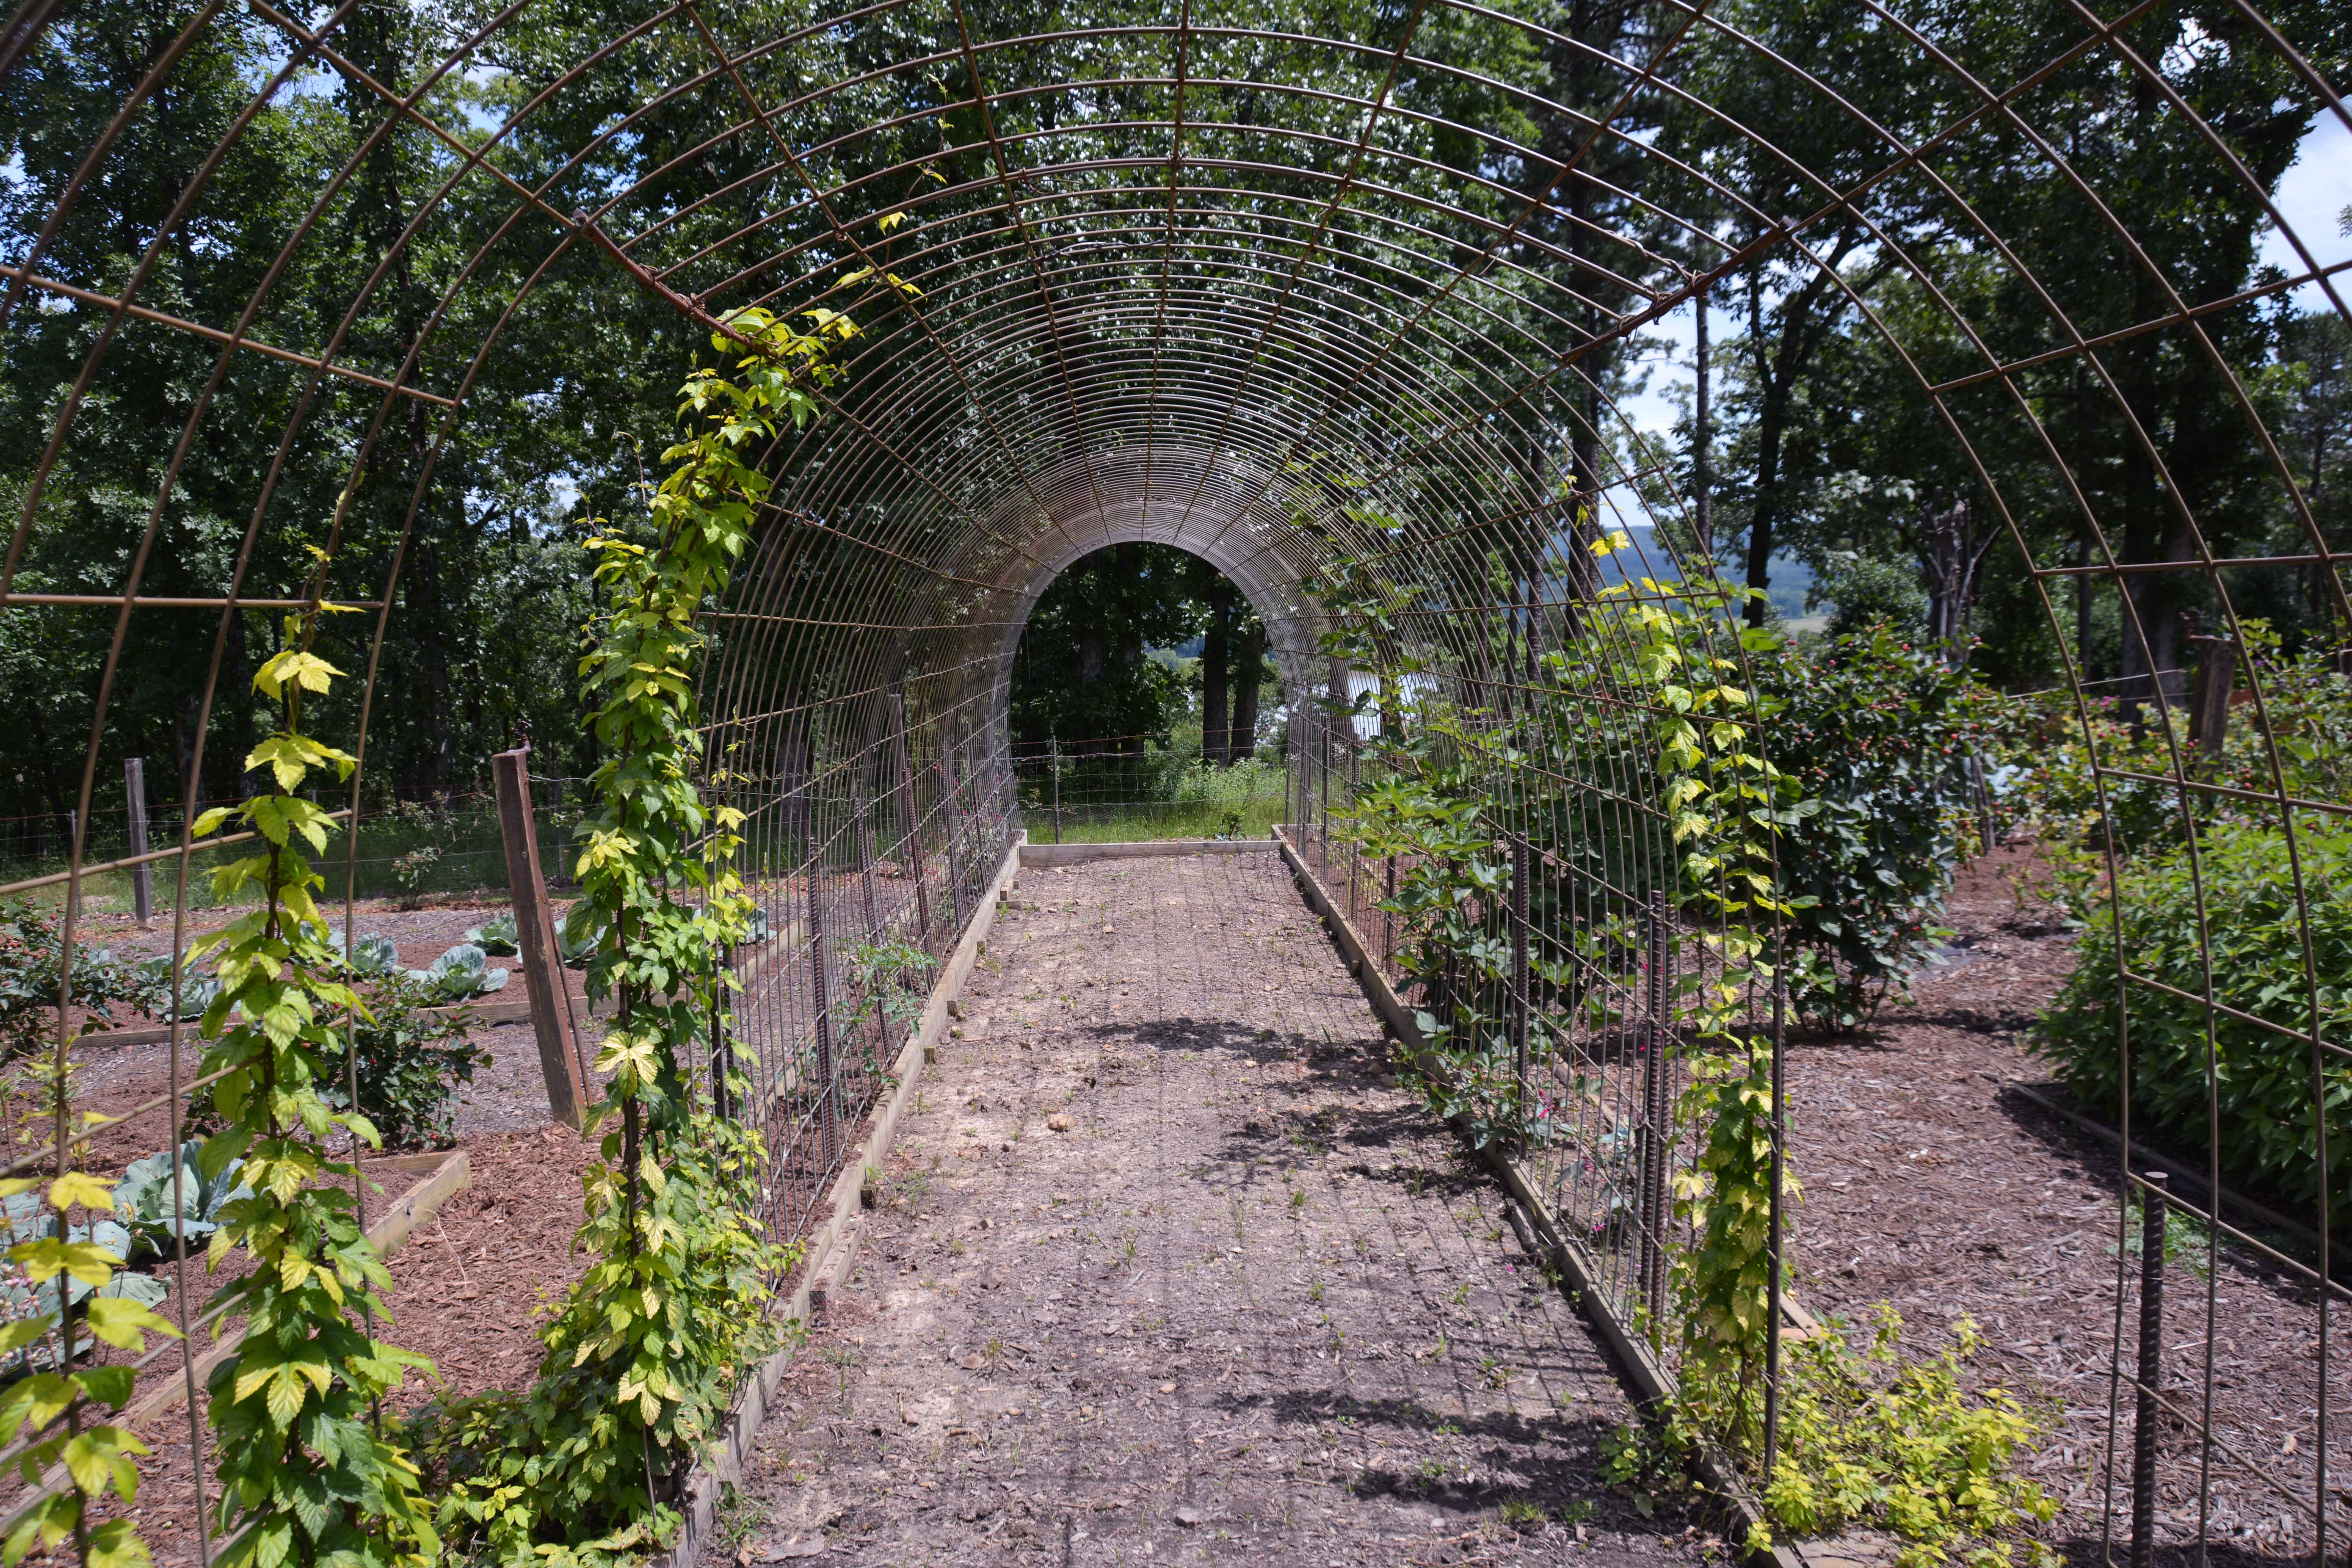 Using wire hog fencing to create a creeping vine tunnel to add structure to your vegetable garden. Garden at Moss Mountain Farm - More images at thinkingoutsidetheboxwood.com